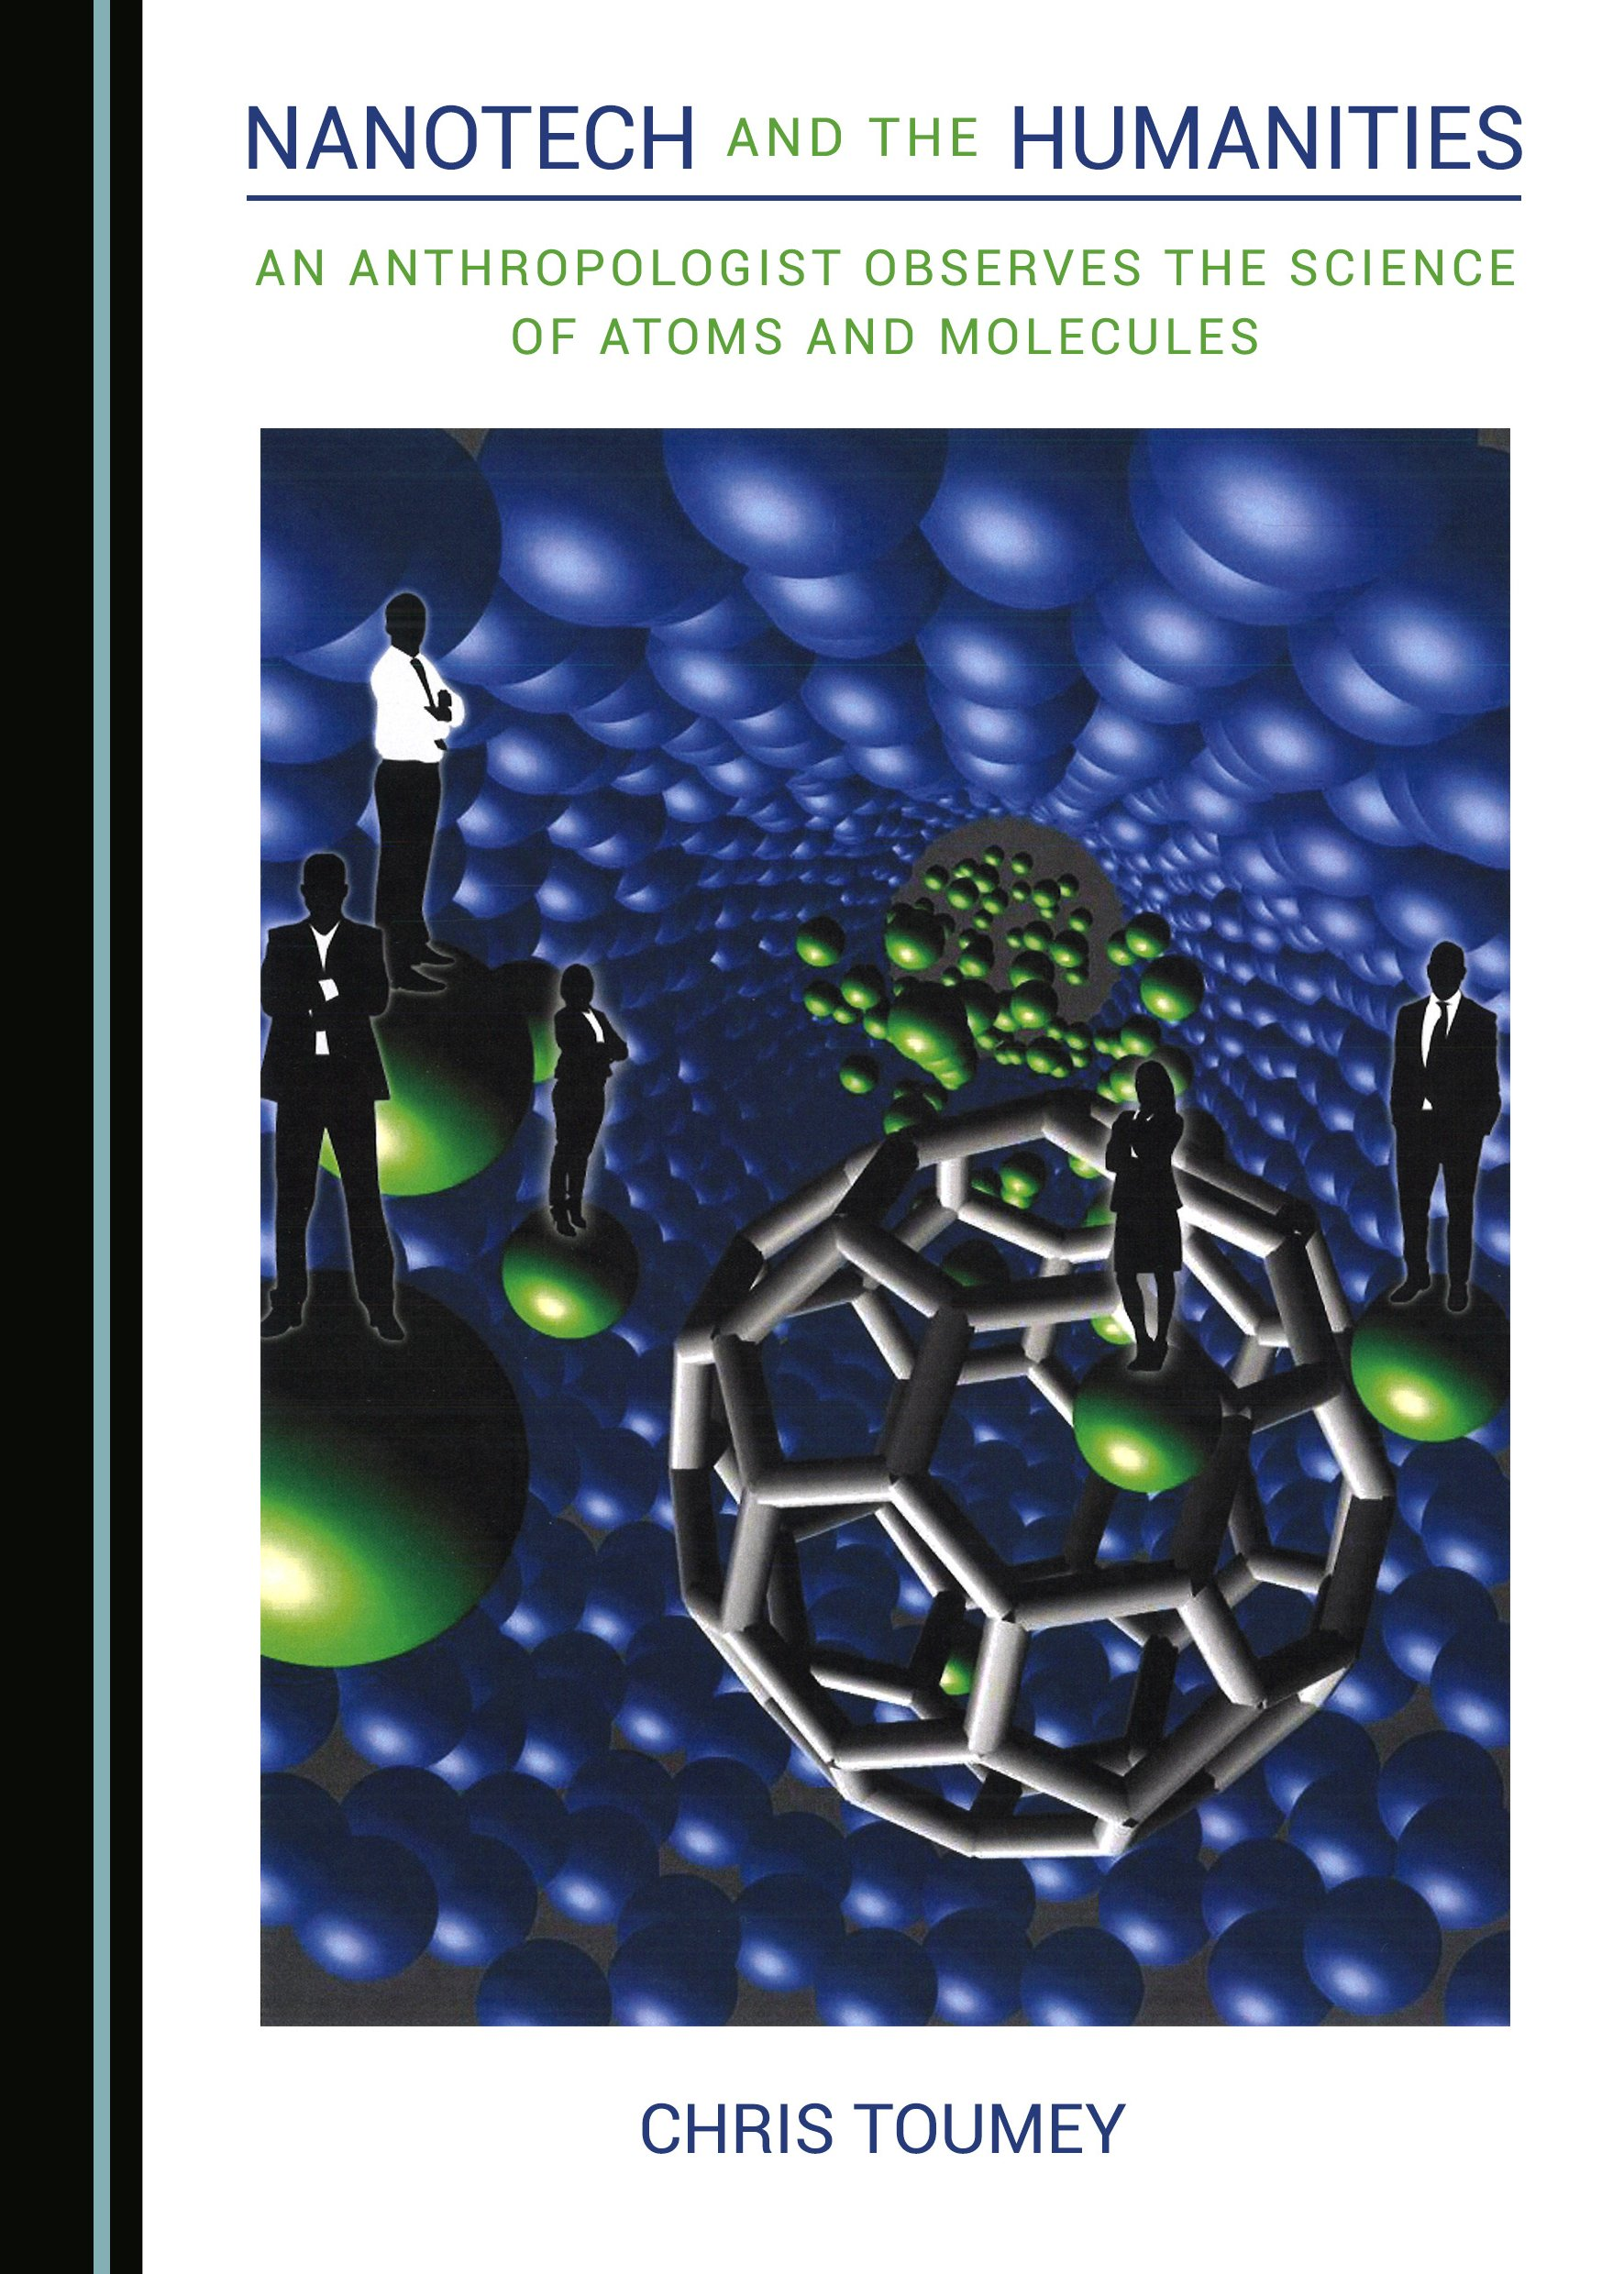 Nanotech and the Humanities: An Anthropologist Observes the Science of Atoms and Molecules